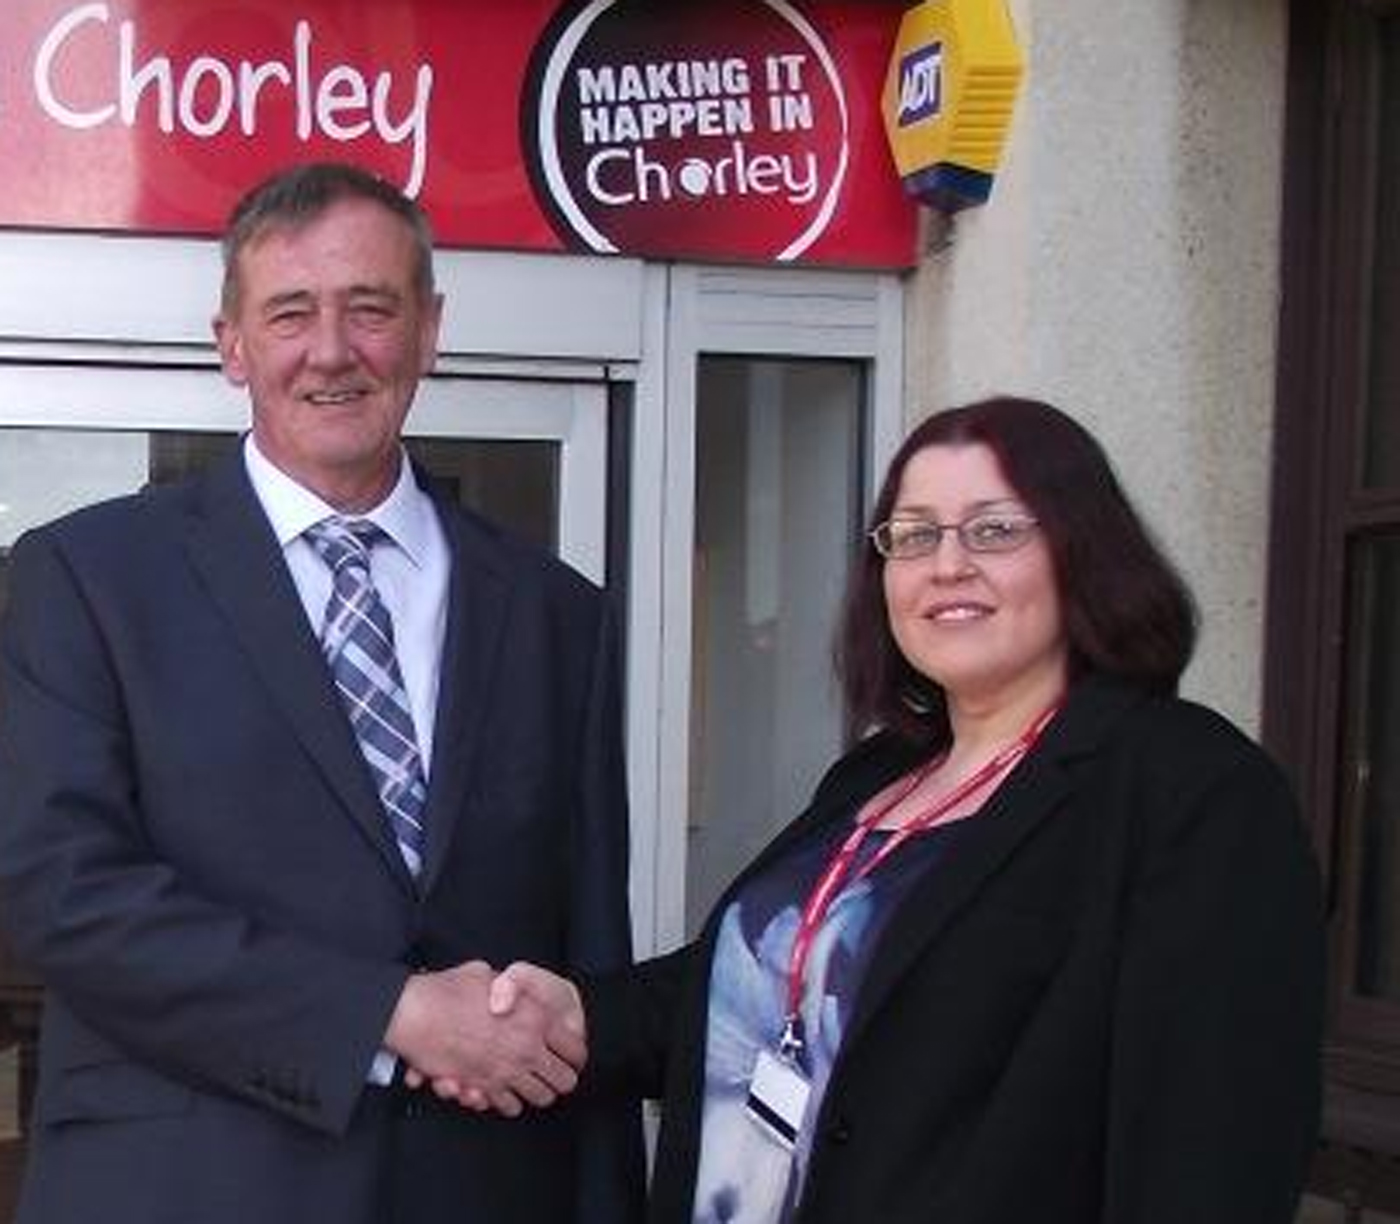 Help for jobless to find work in Chorley